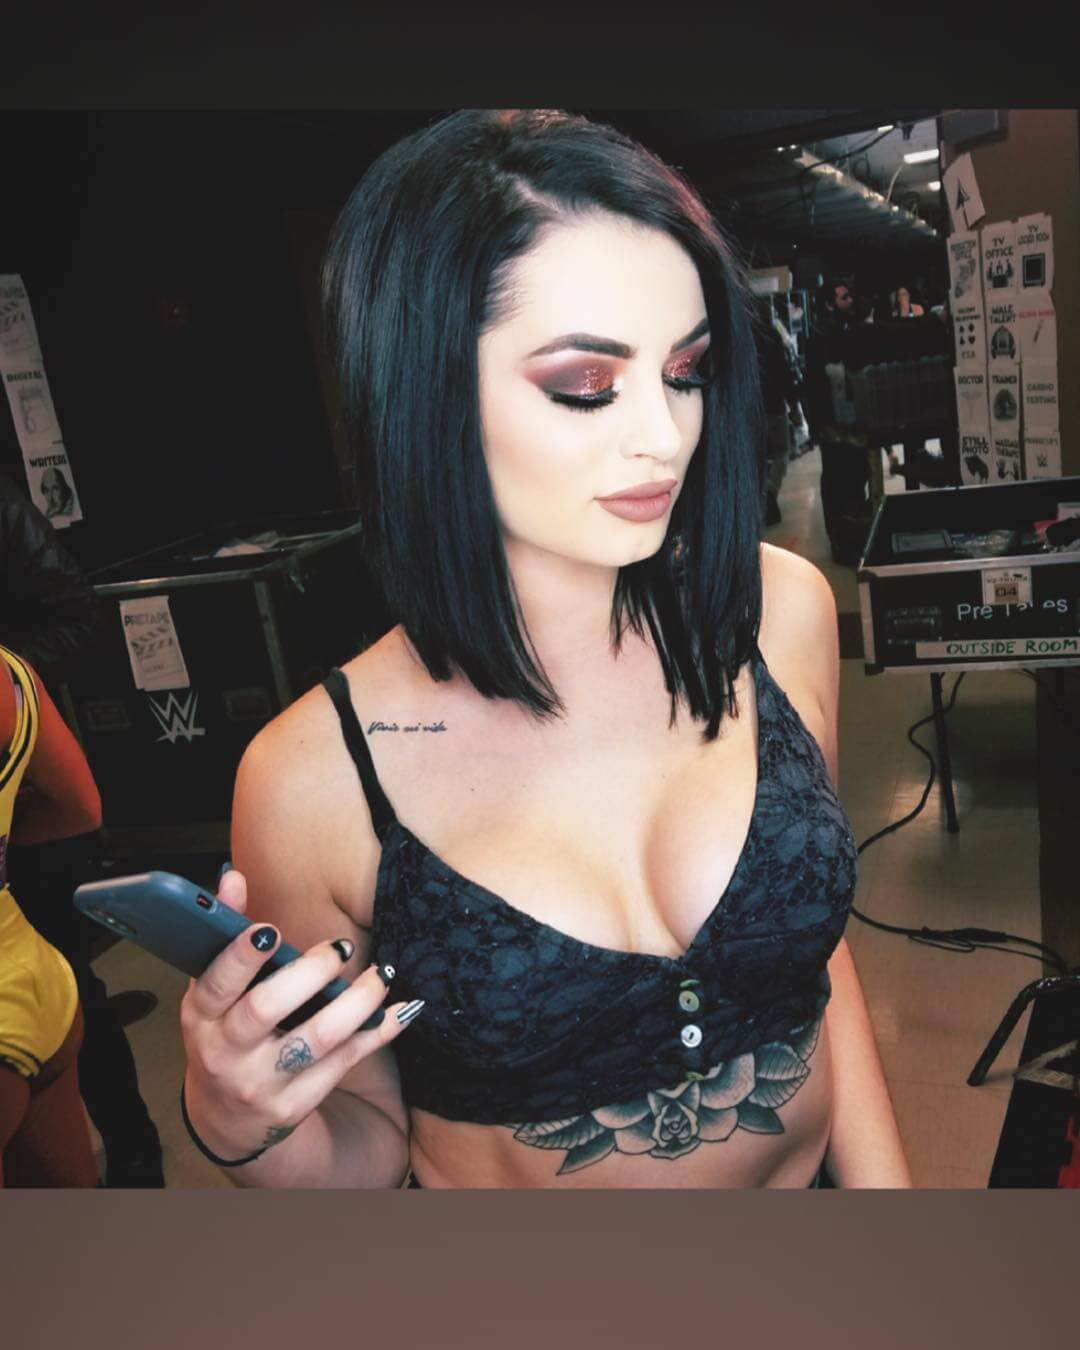 Paige sexy cleavage pics